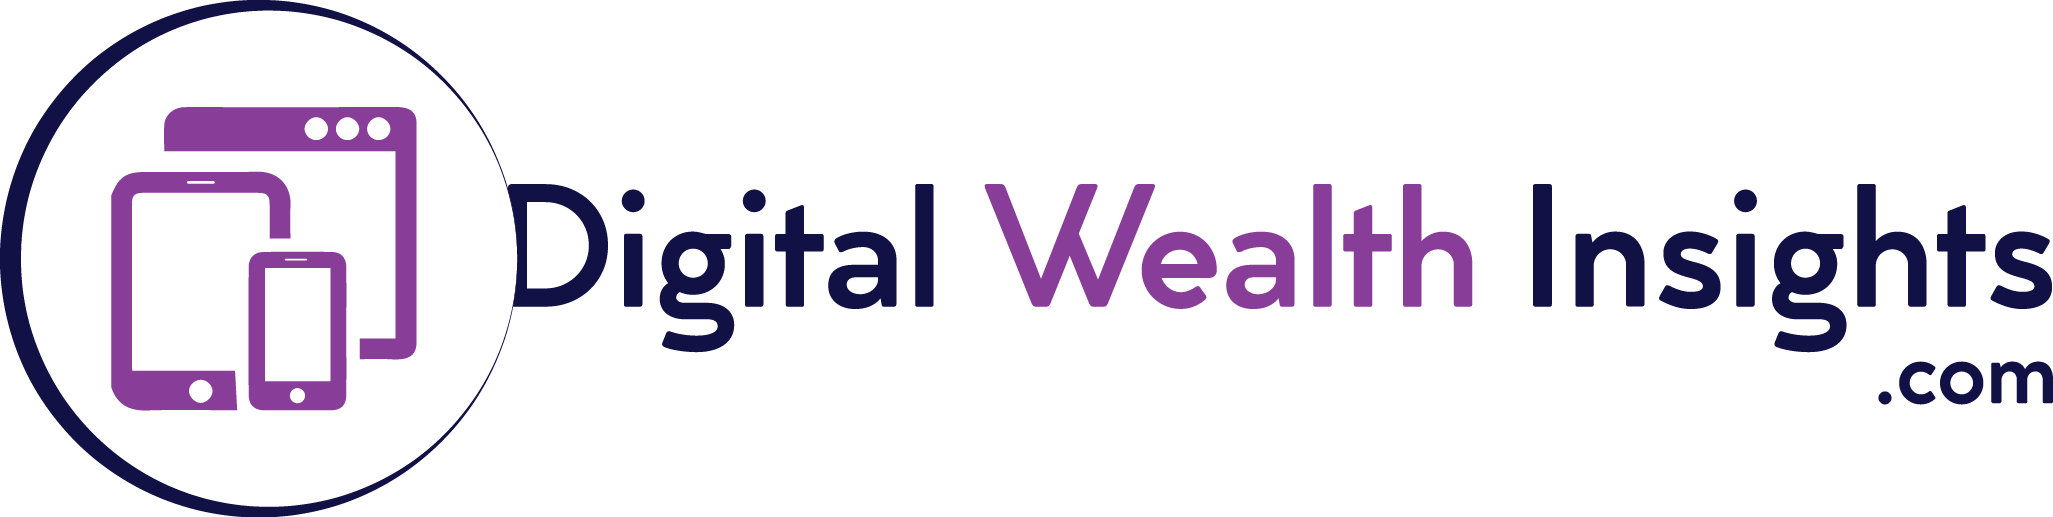 DigitalWealthInsights.com